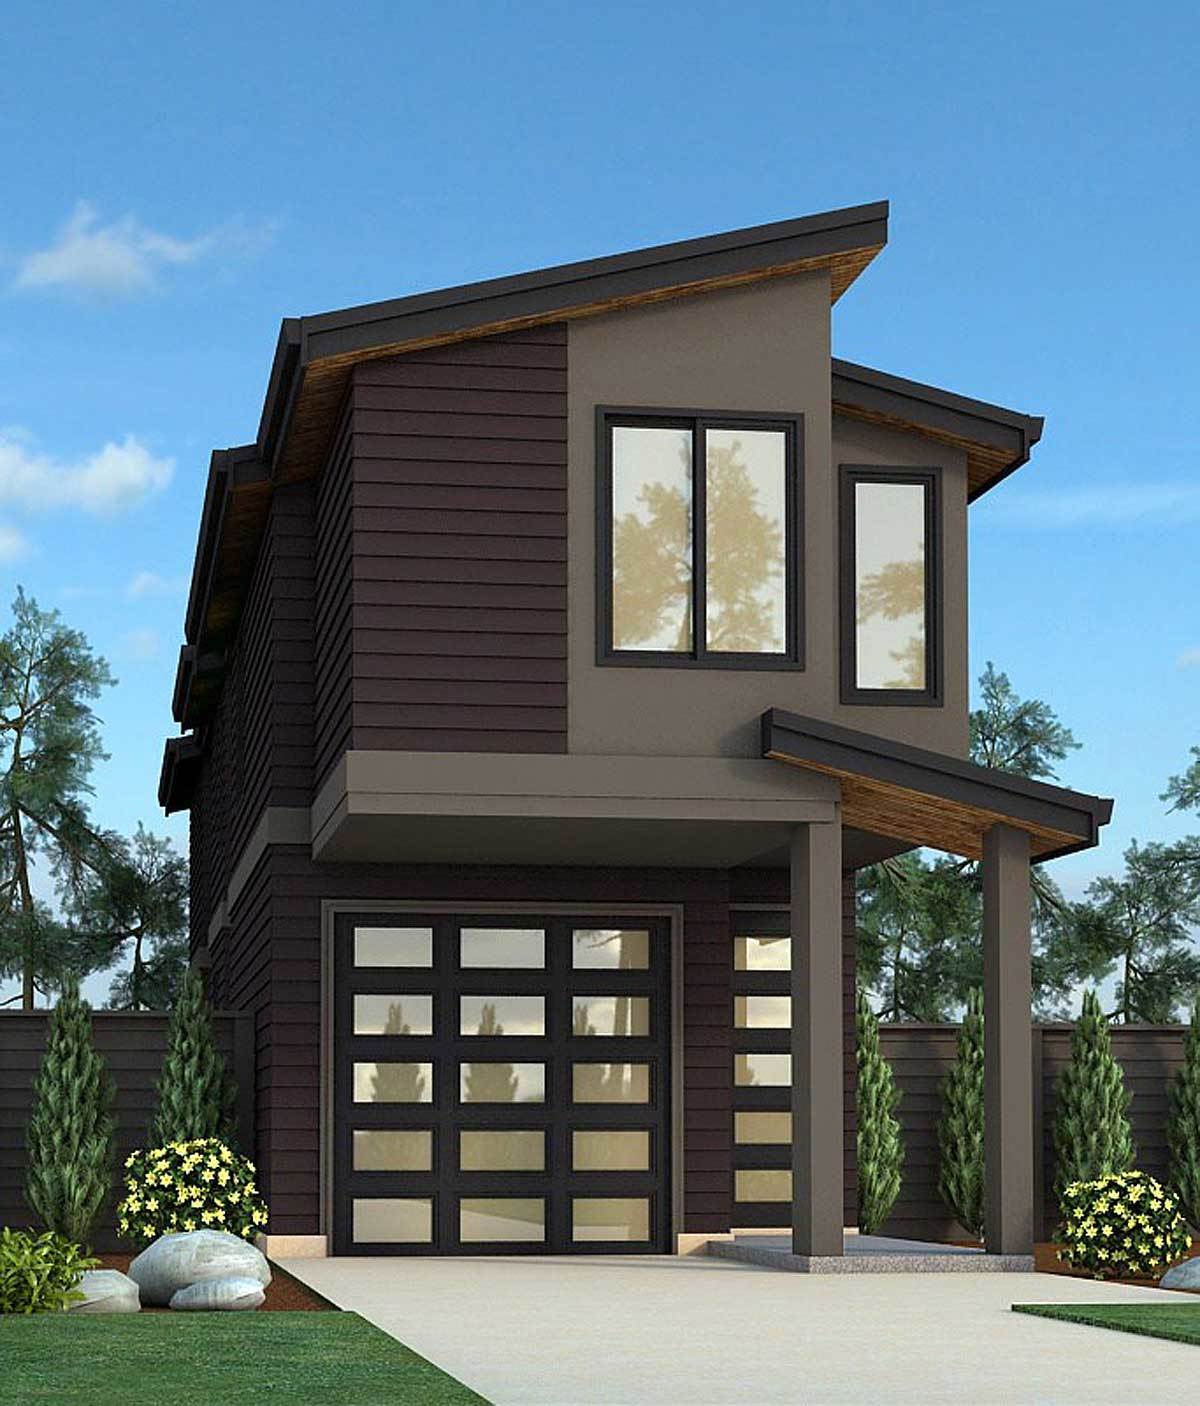 85151MS 1477591441 1479220697 - 22+ Small Narrow House Plans Images